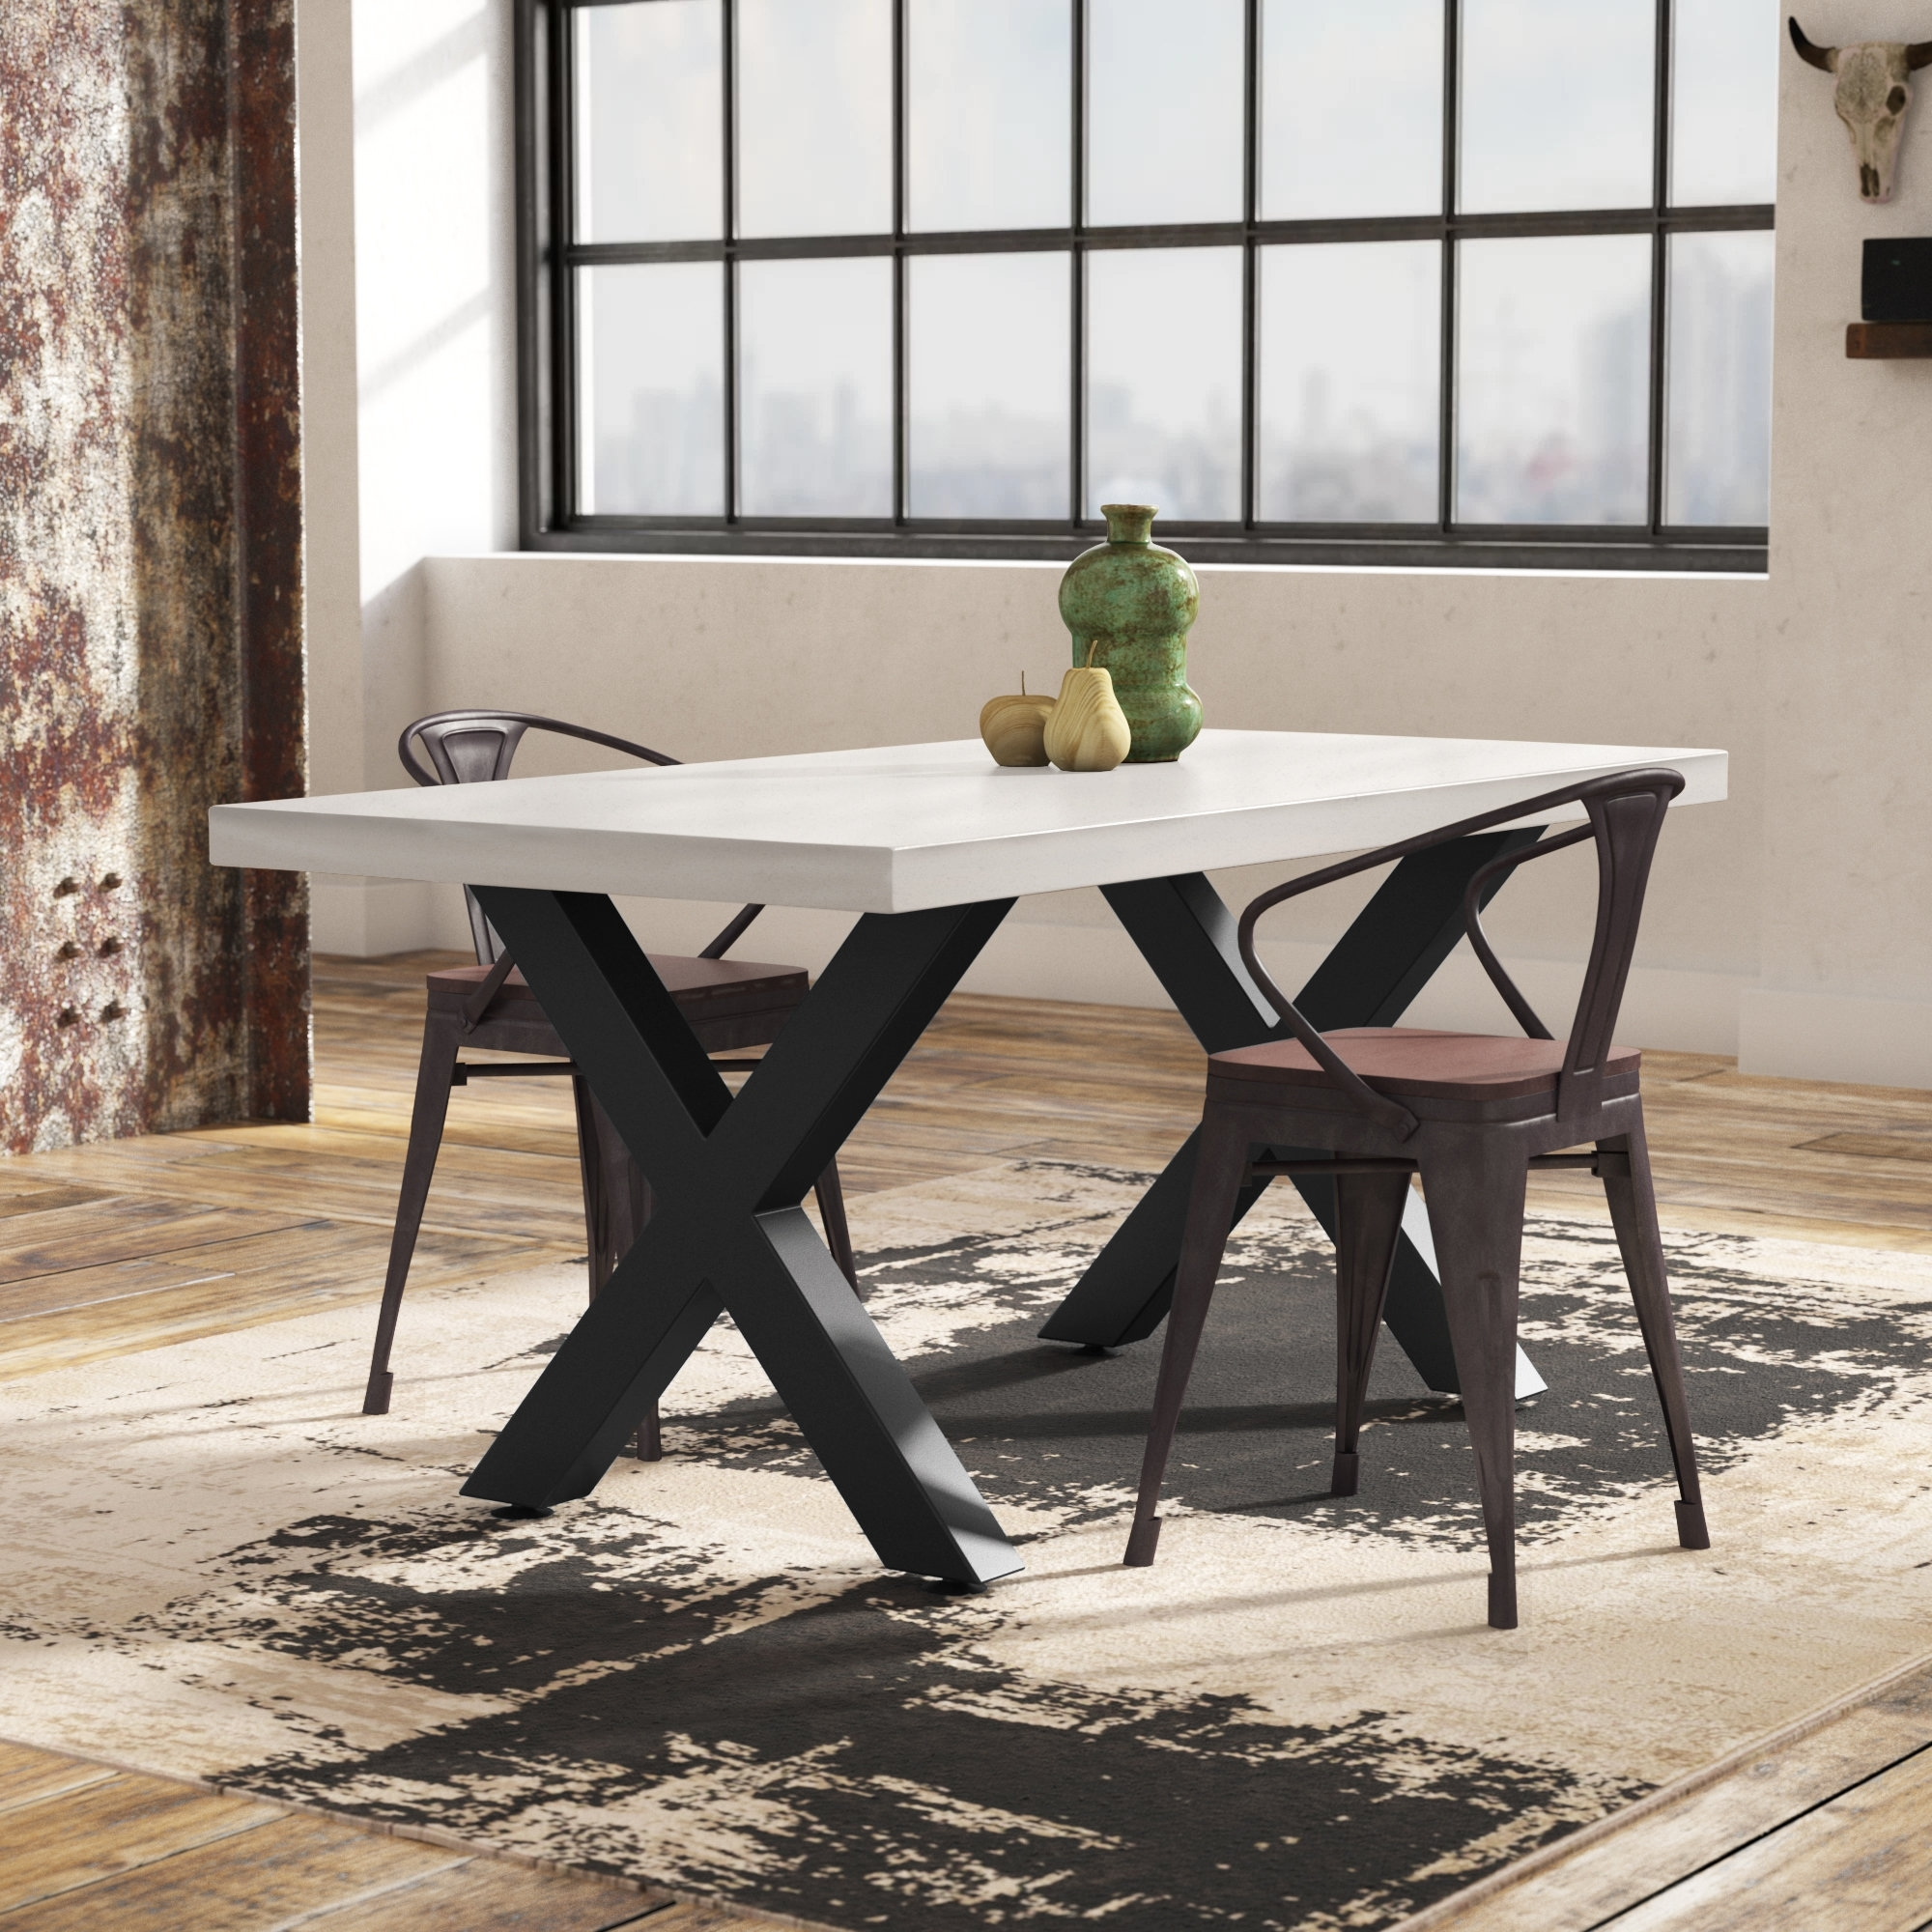 17 Stories Bodil Concrete Rectangular Dining Table & Reviews | Wayfair Throughout Most Up To Date Candice Ii Extension Rectangle Dining Tables (View 11 of 20)